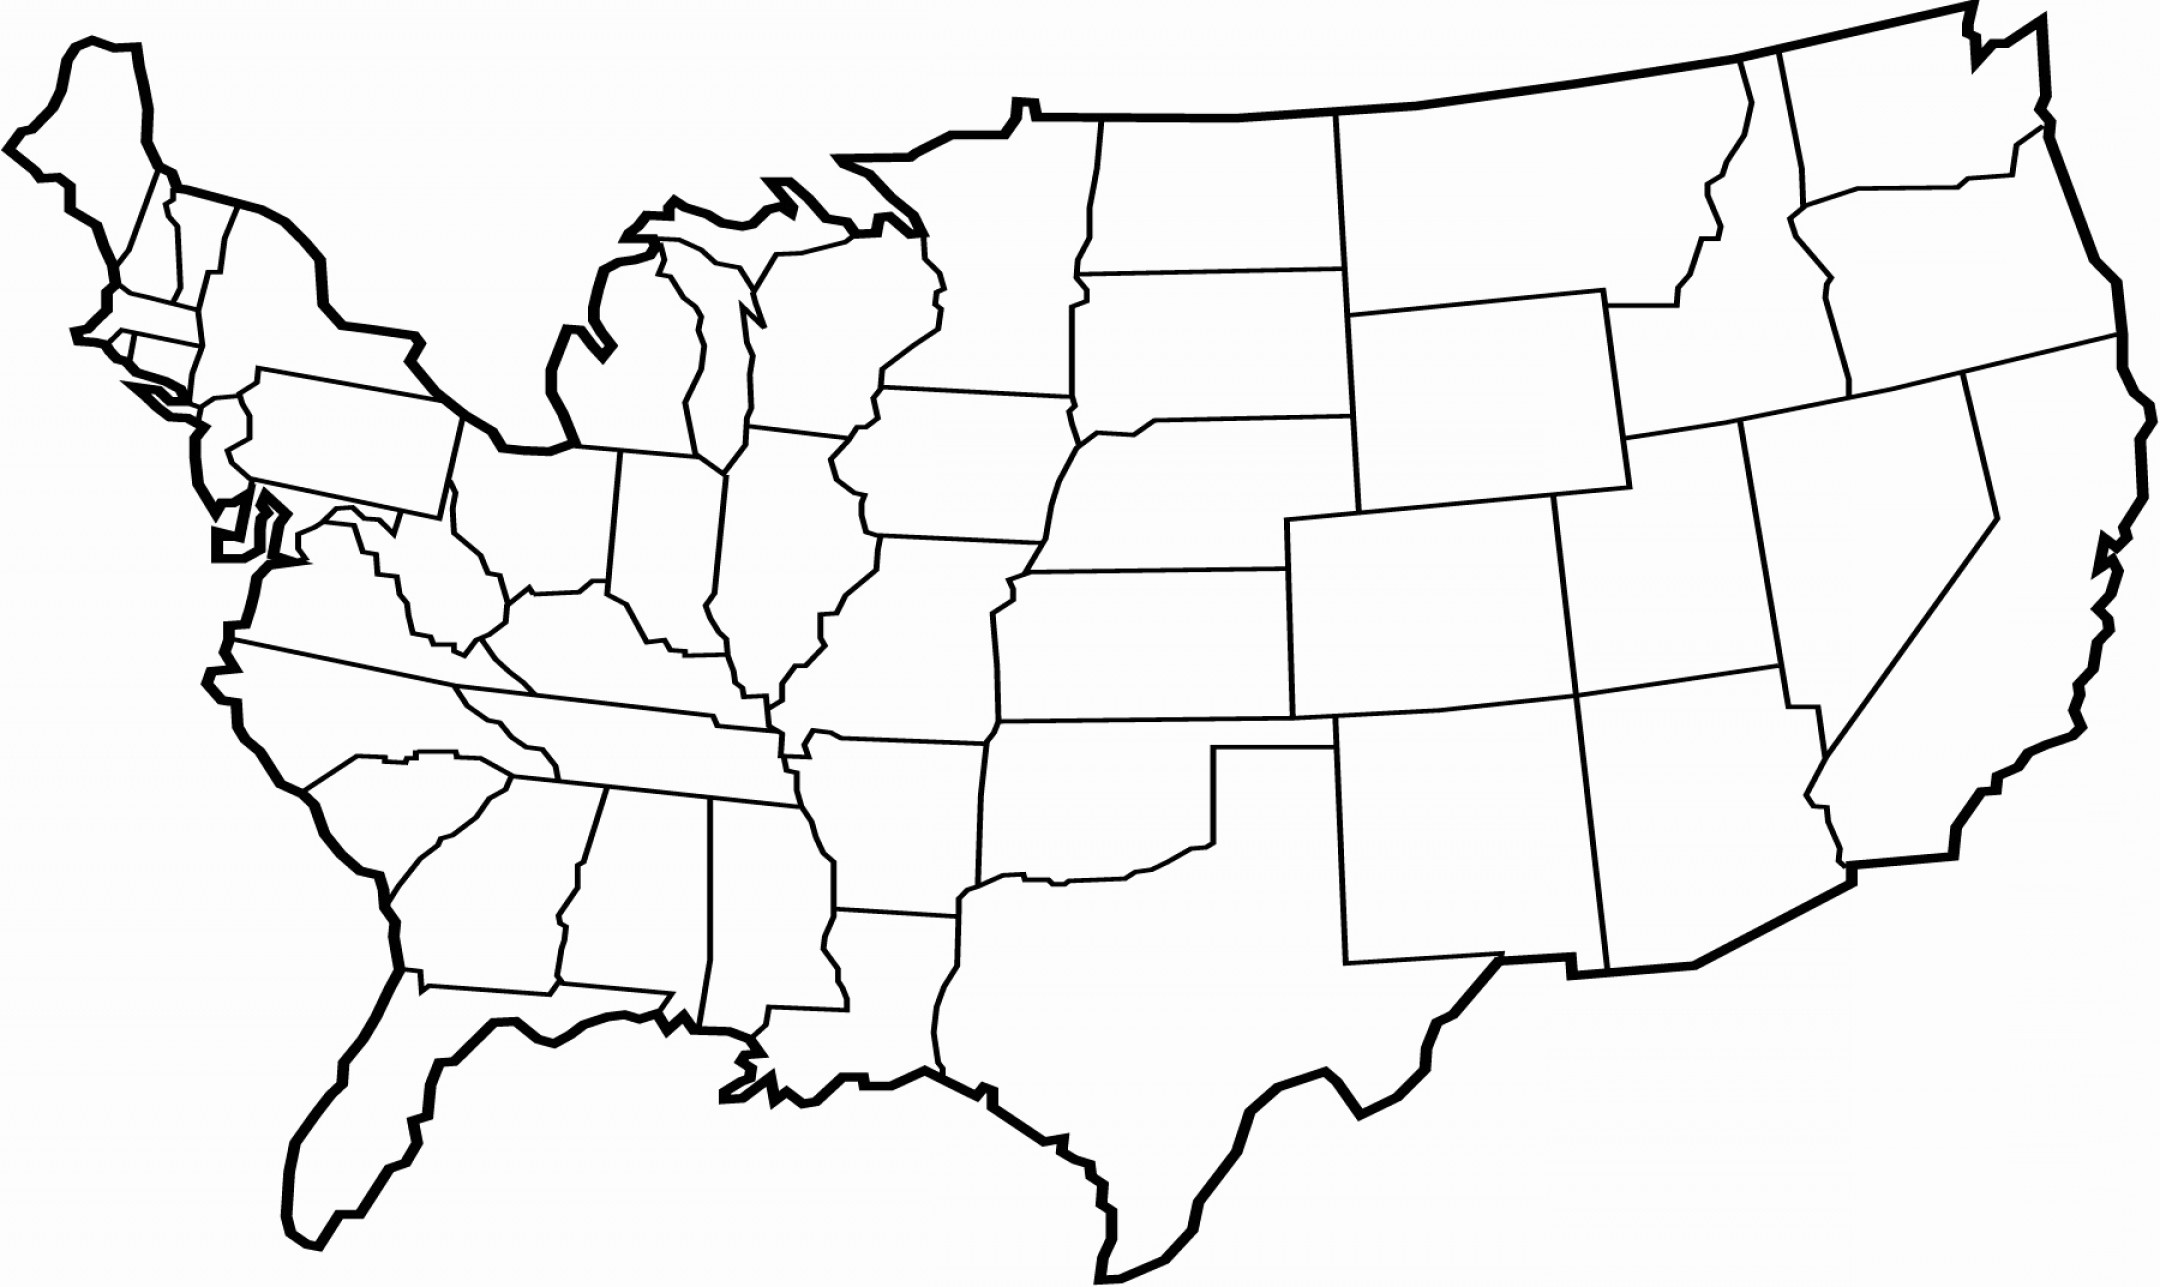 2160x1287 Usa Map Vector Outline Fresh Blank Usa Map Vector Blank Usa Map